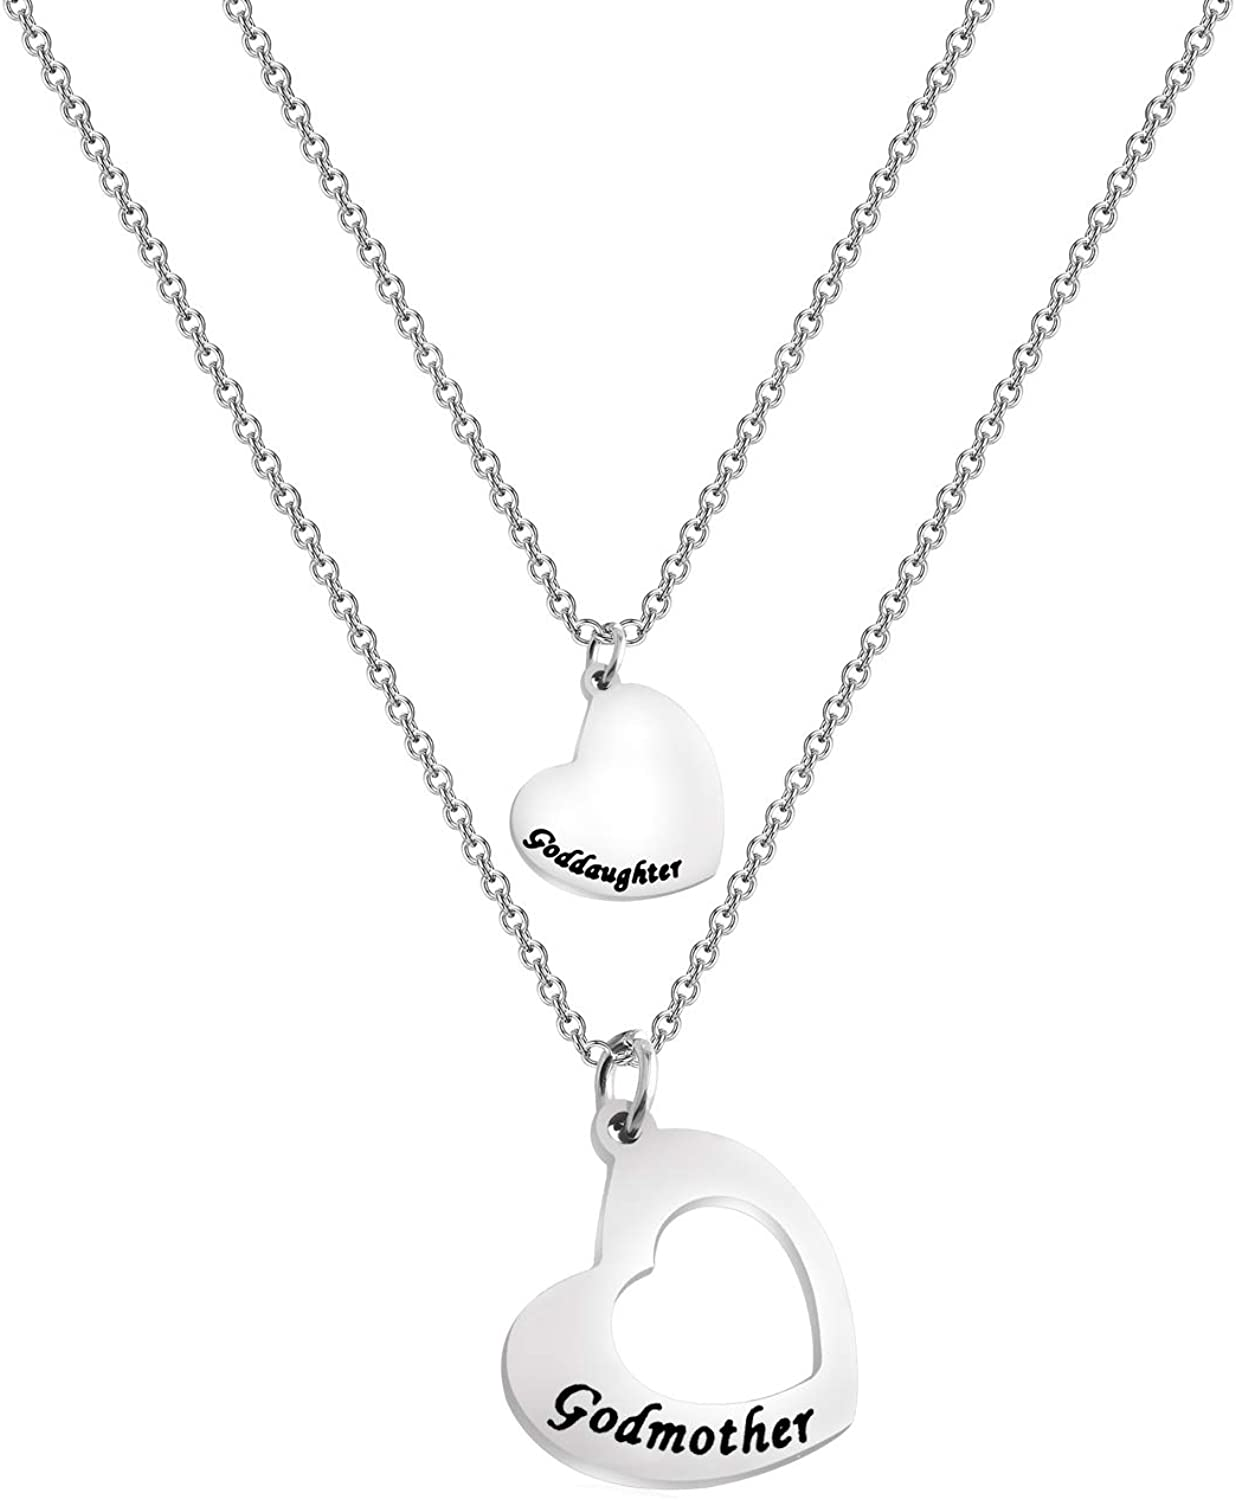 FUSTMW Goddaughter Necklace Godmother In Heart Matching Necklace